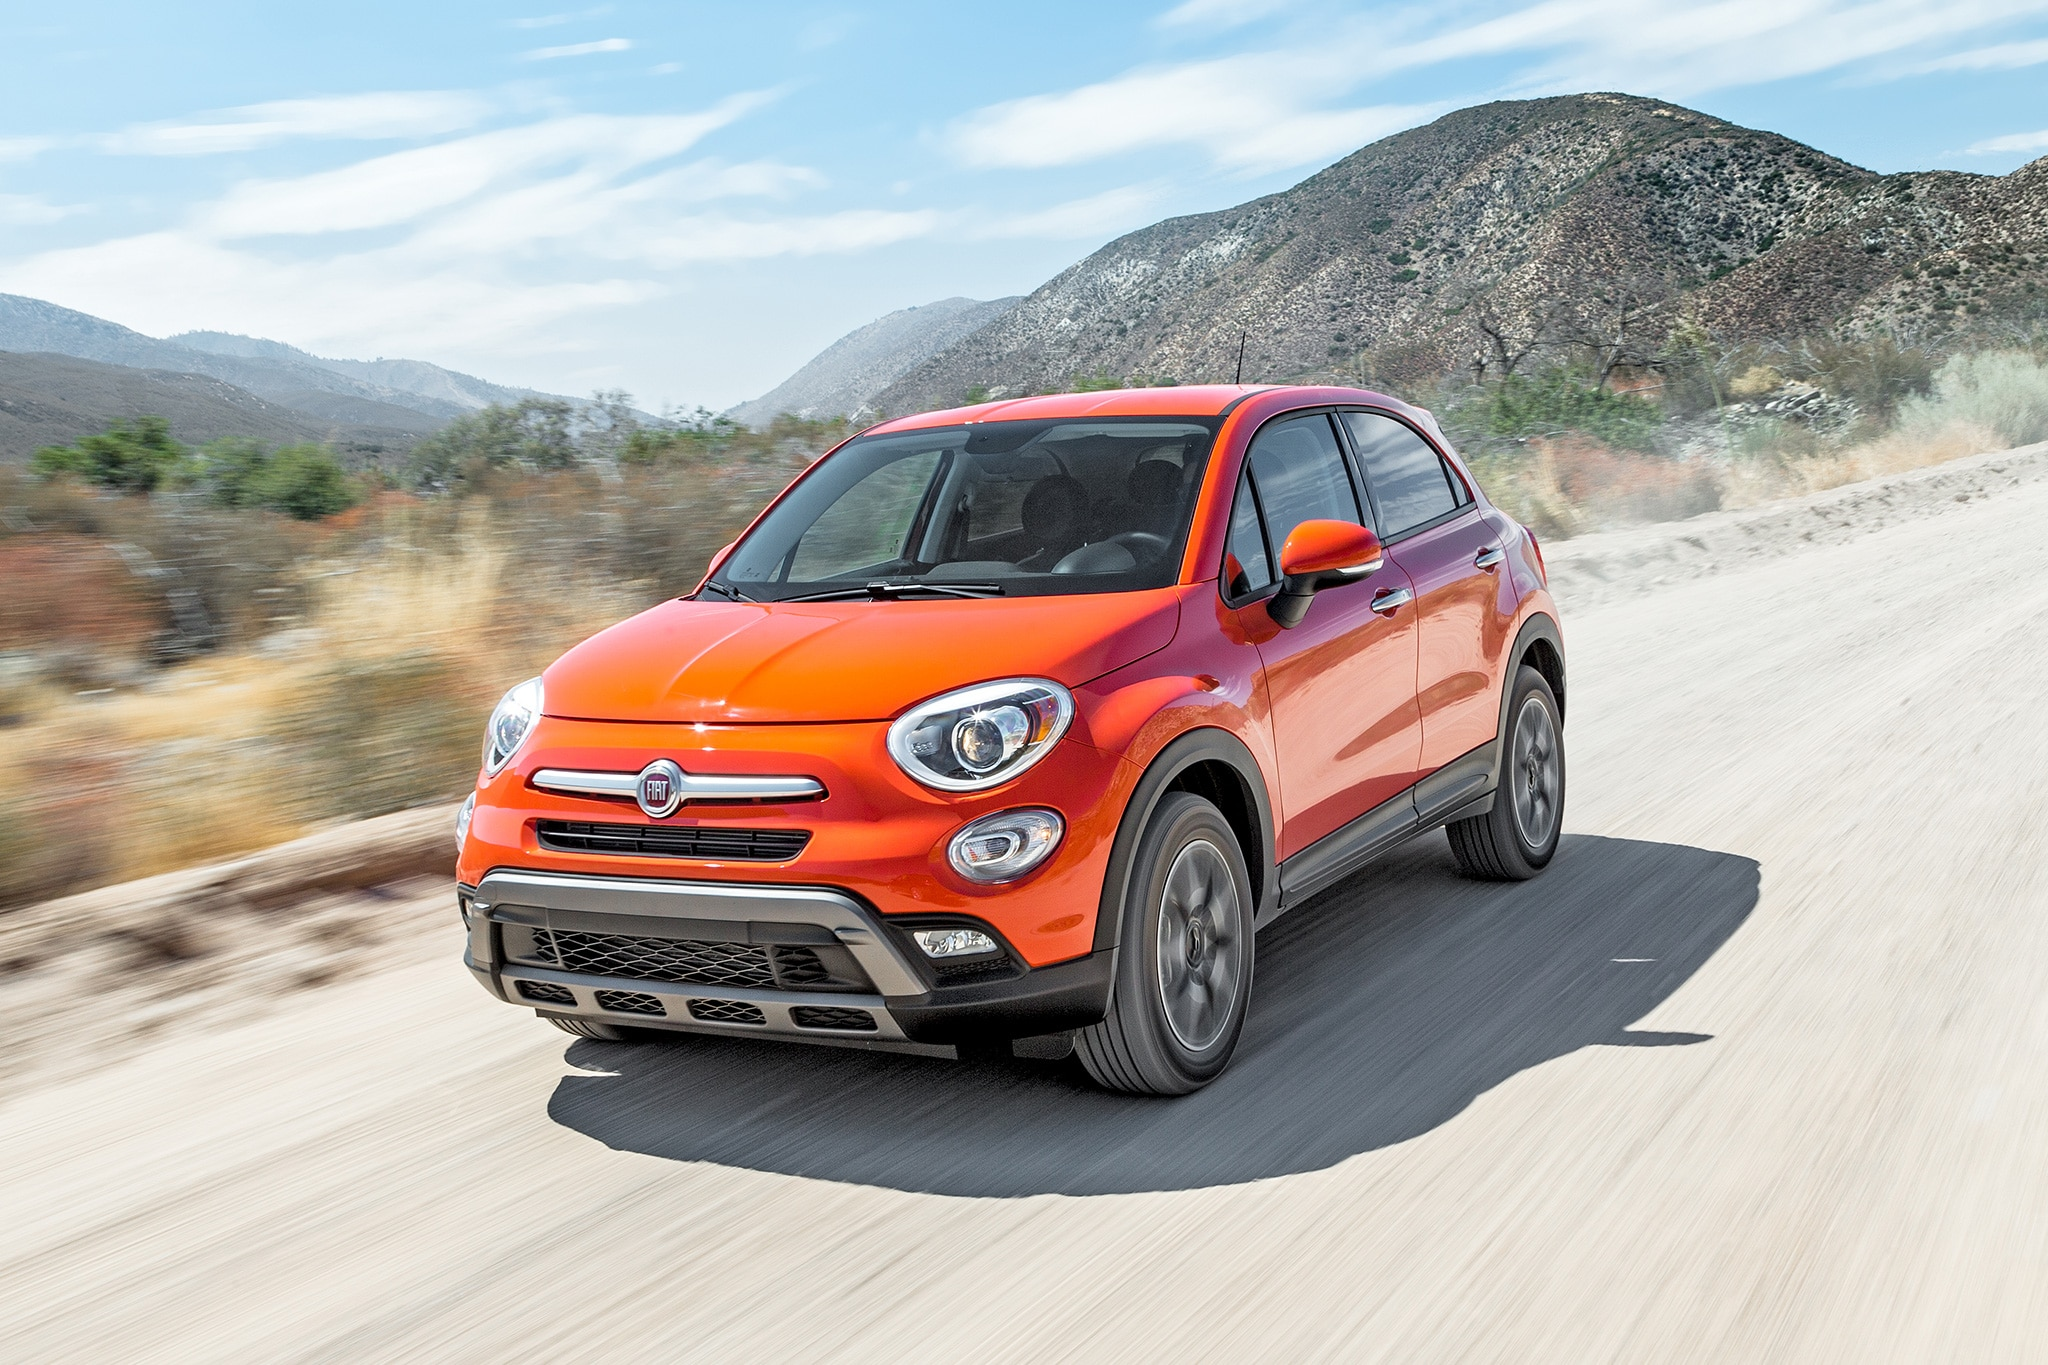 2016 Fiat 500X Trekking AWD Front Three Quarter In Motion 04